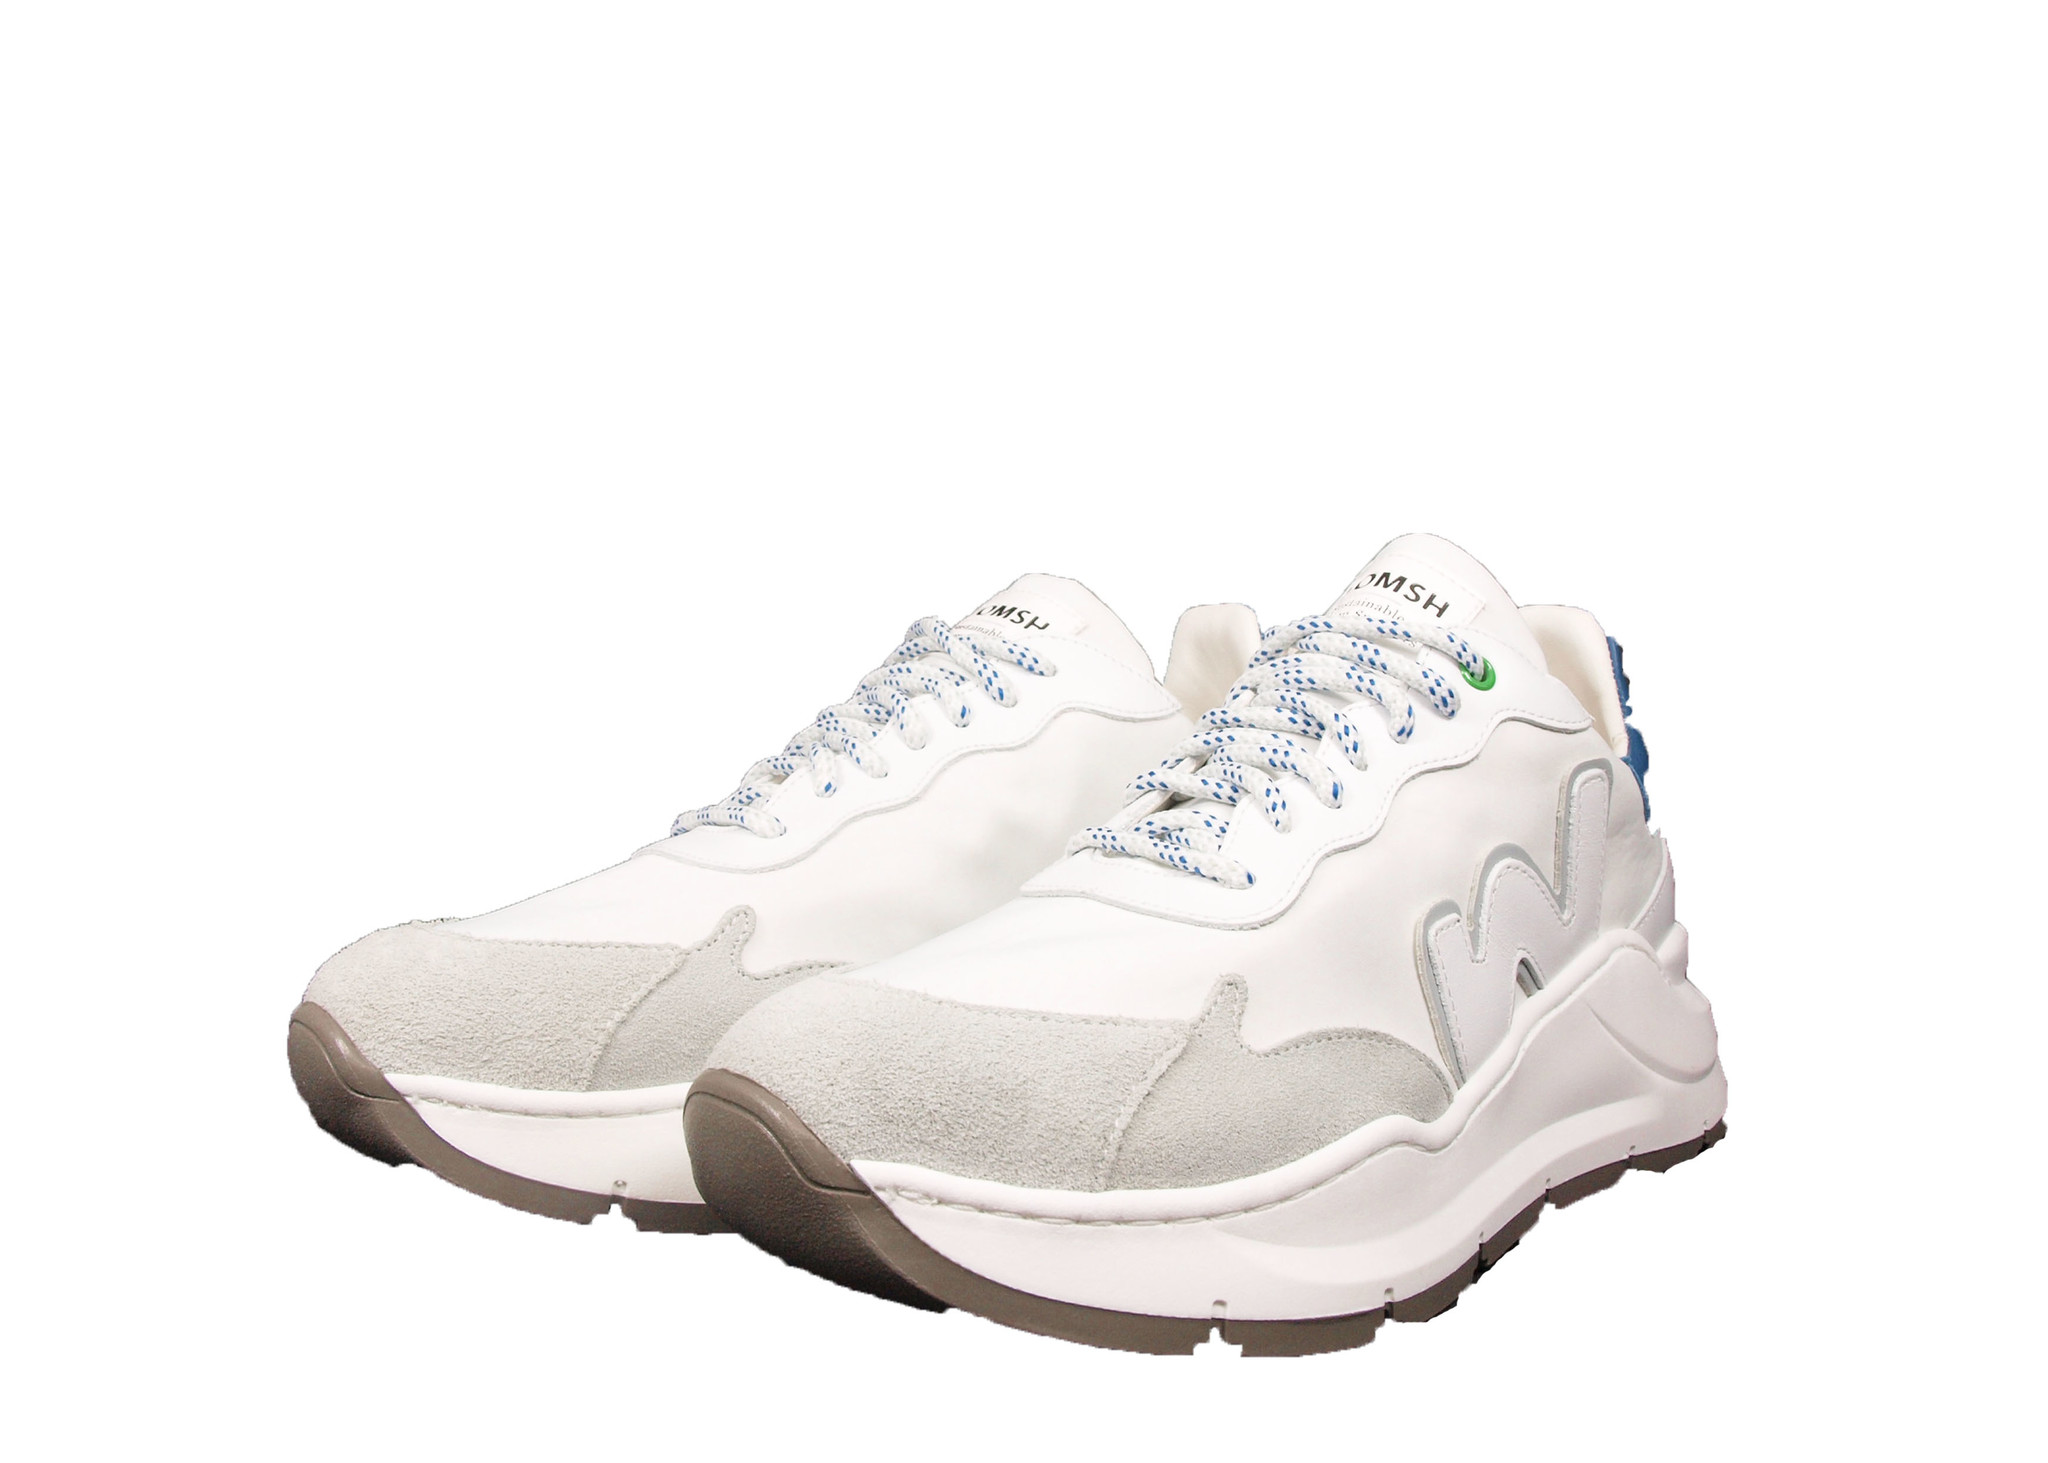 WOMSH WOMSH Sustainable Sneaker W211861 Wave Wit/Blauw